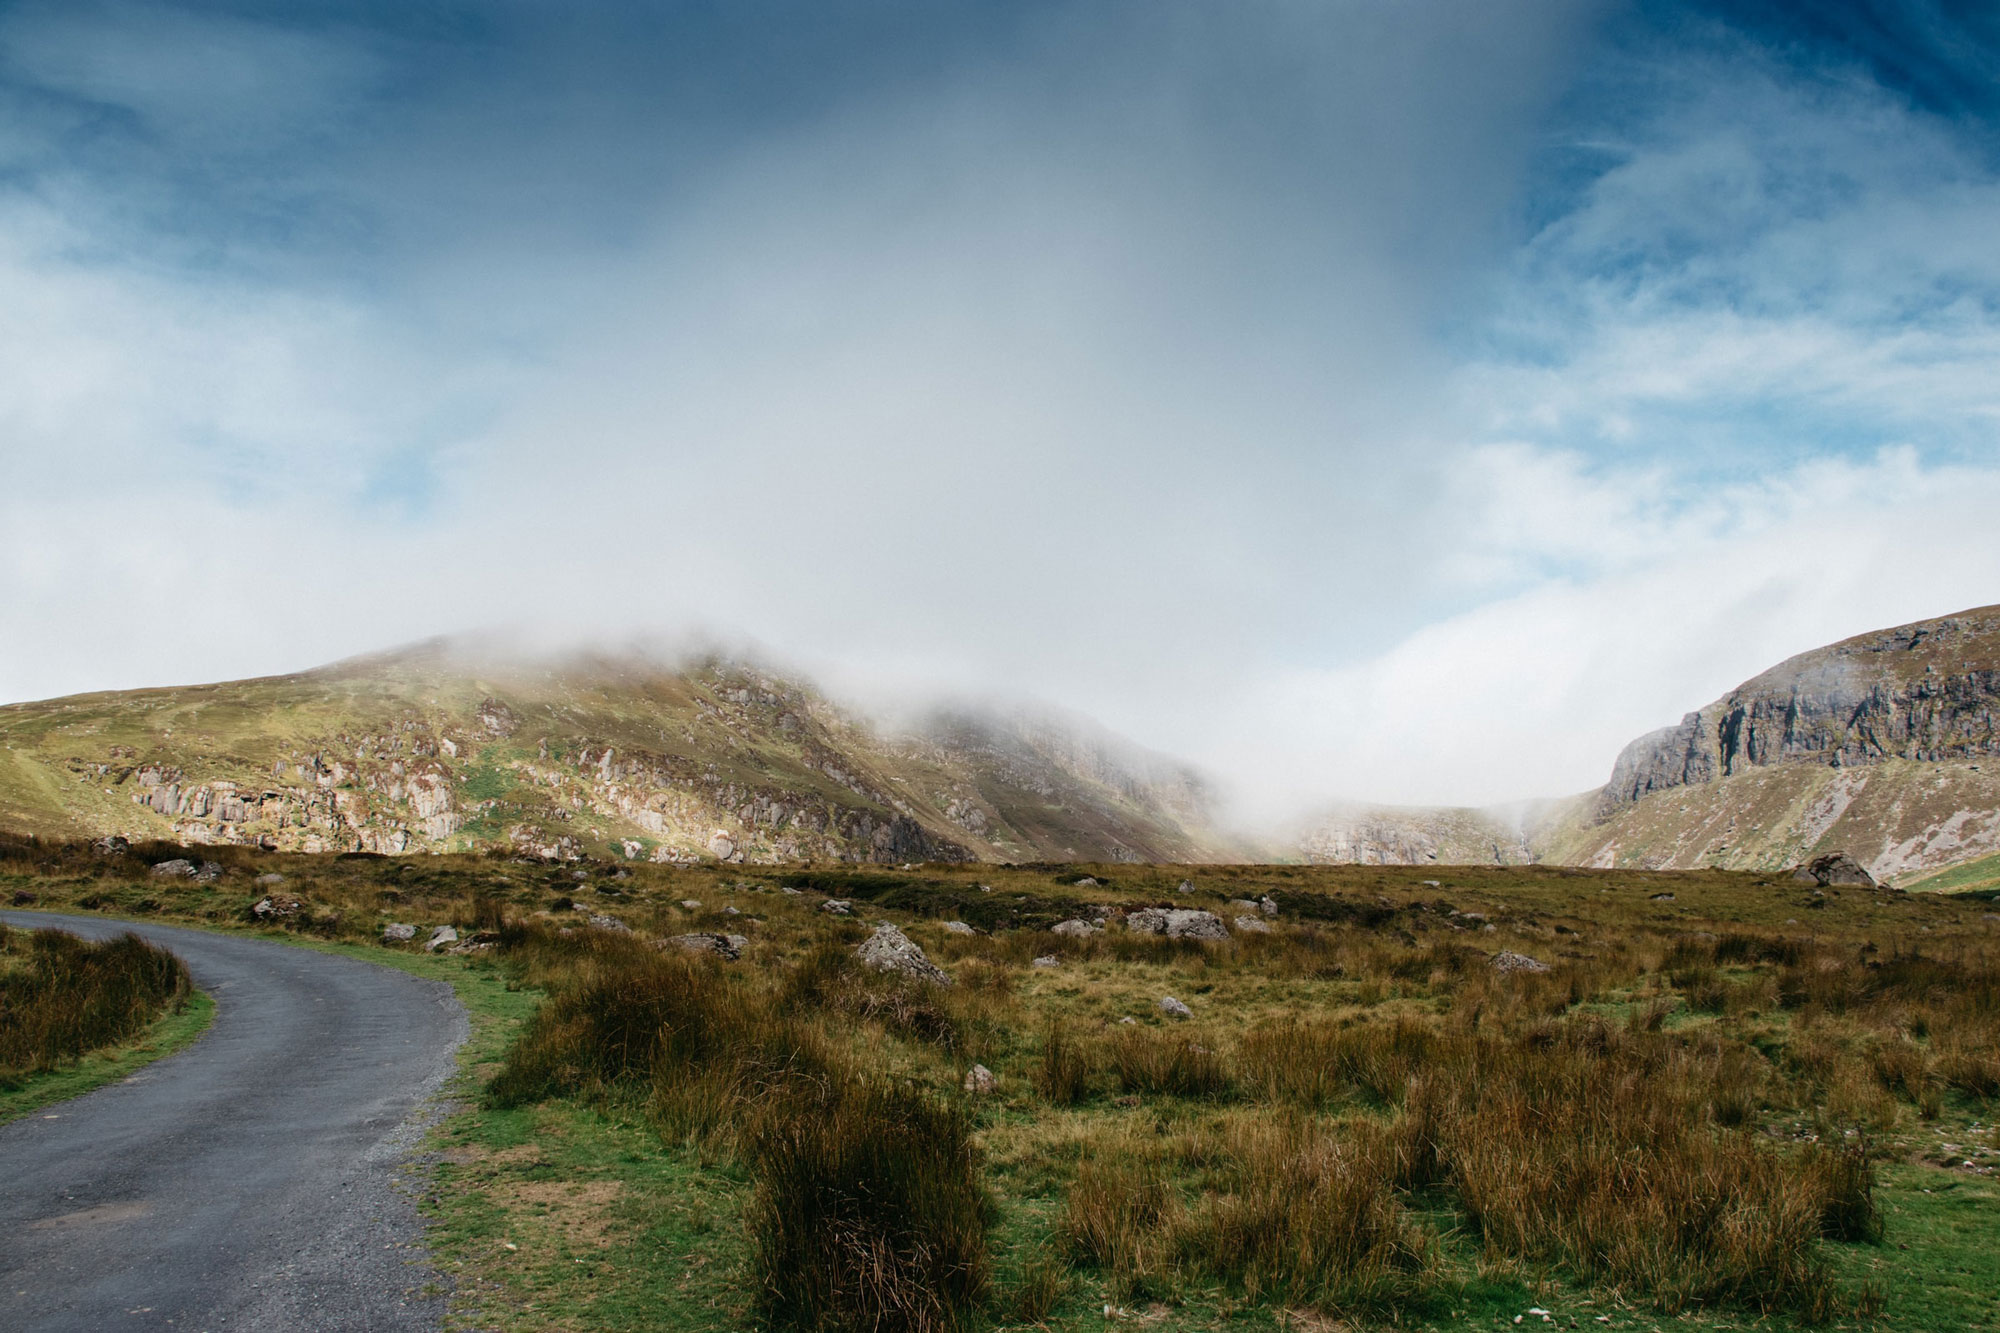 The Comeragh Mountains, near Ireland's south coast, with clouds starting to envelope the craggy cliffs and hills. Photo by Will Francis.